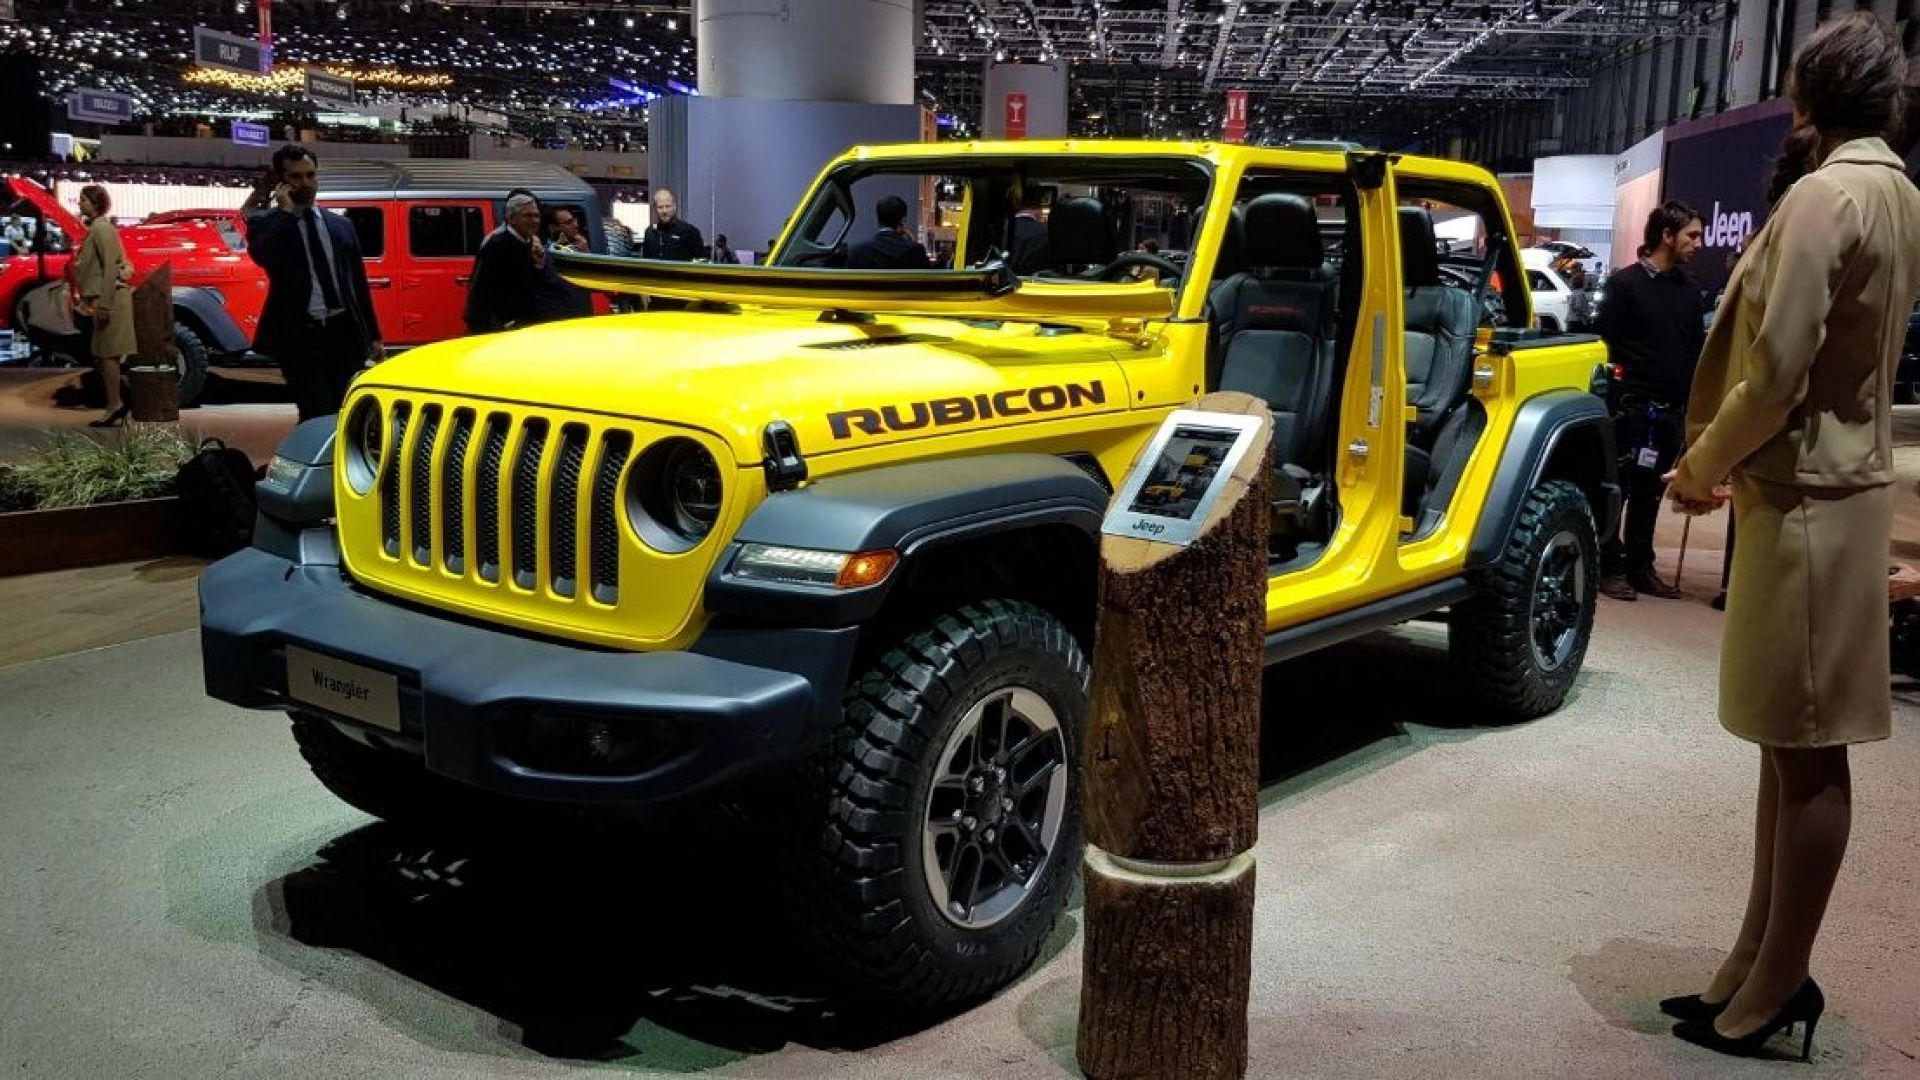 salone di ginevra 2018 le novit allo stand jeep con renegade e wrangler motorbox. Black Bedroom Furniture Sets. Home Design Ideas